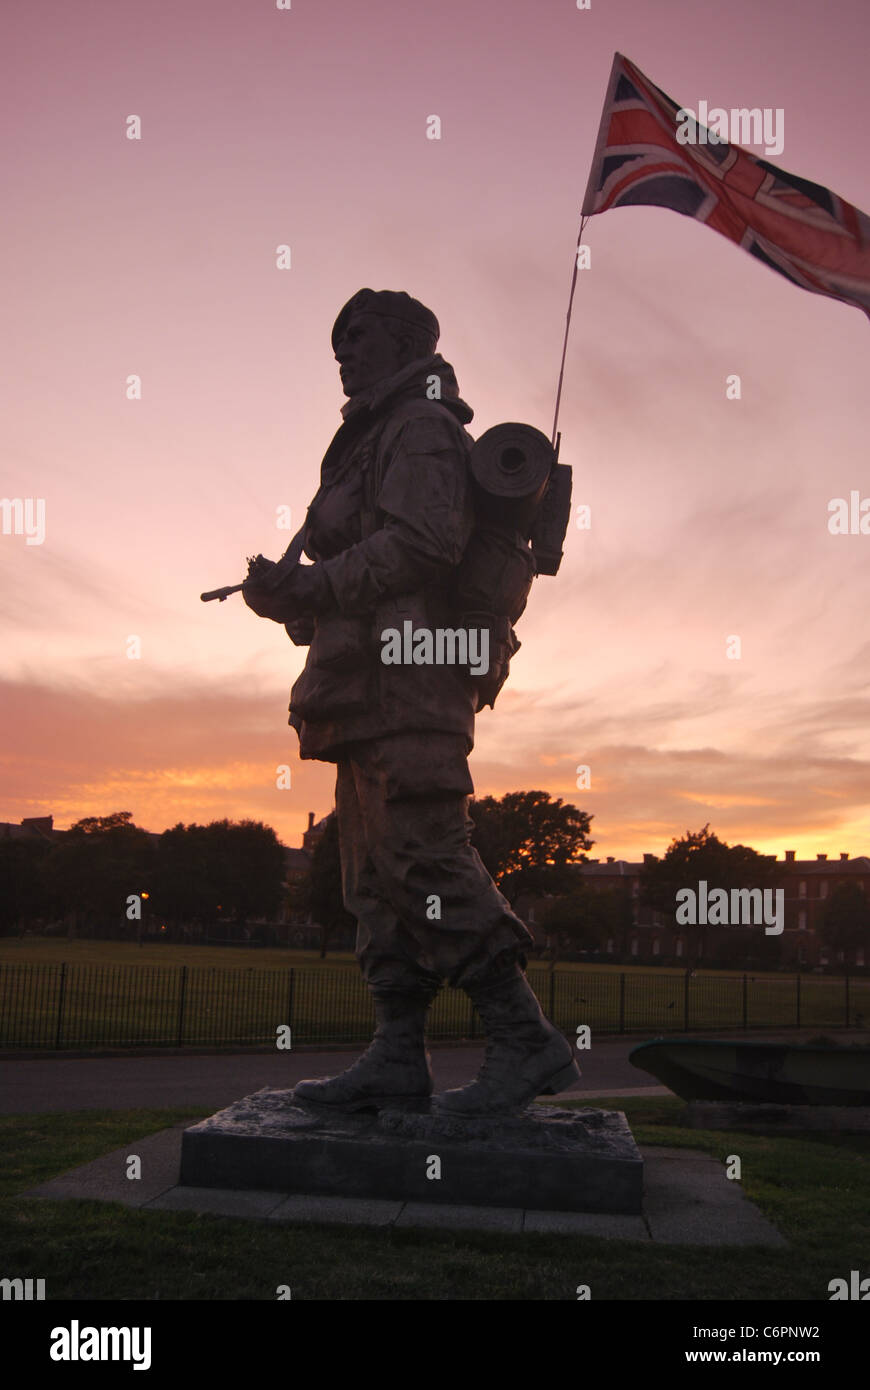 'Yomper' Royal Marines Memorial Statue at Sunset in Southsea, Hampshire, United Kingdom. - Stock Image